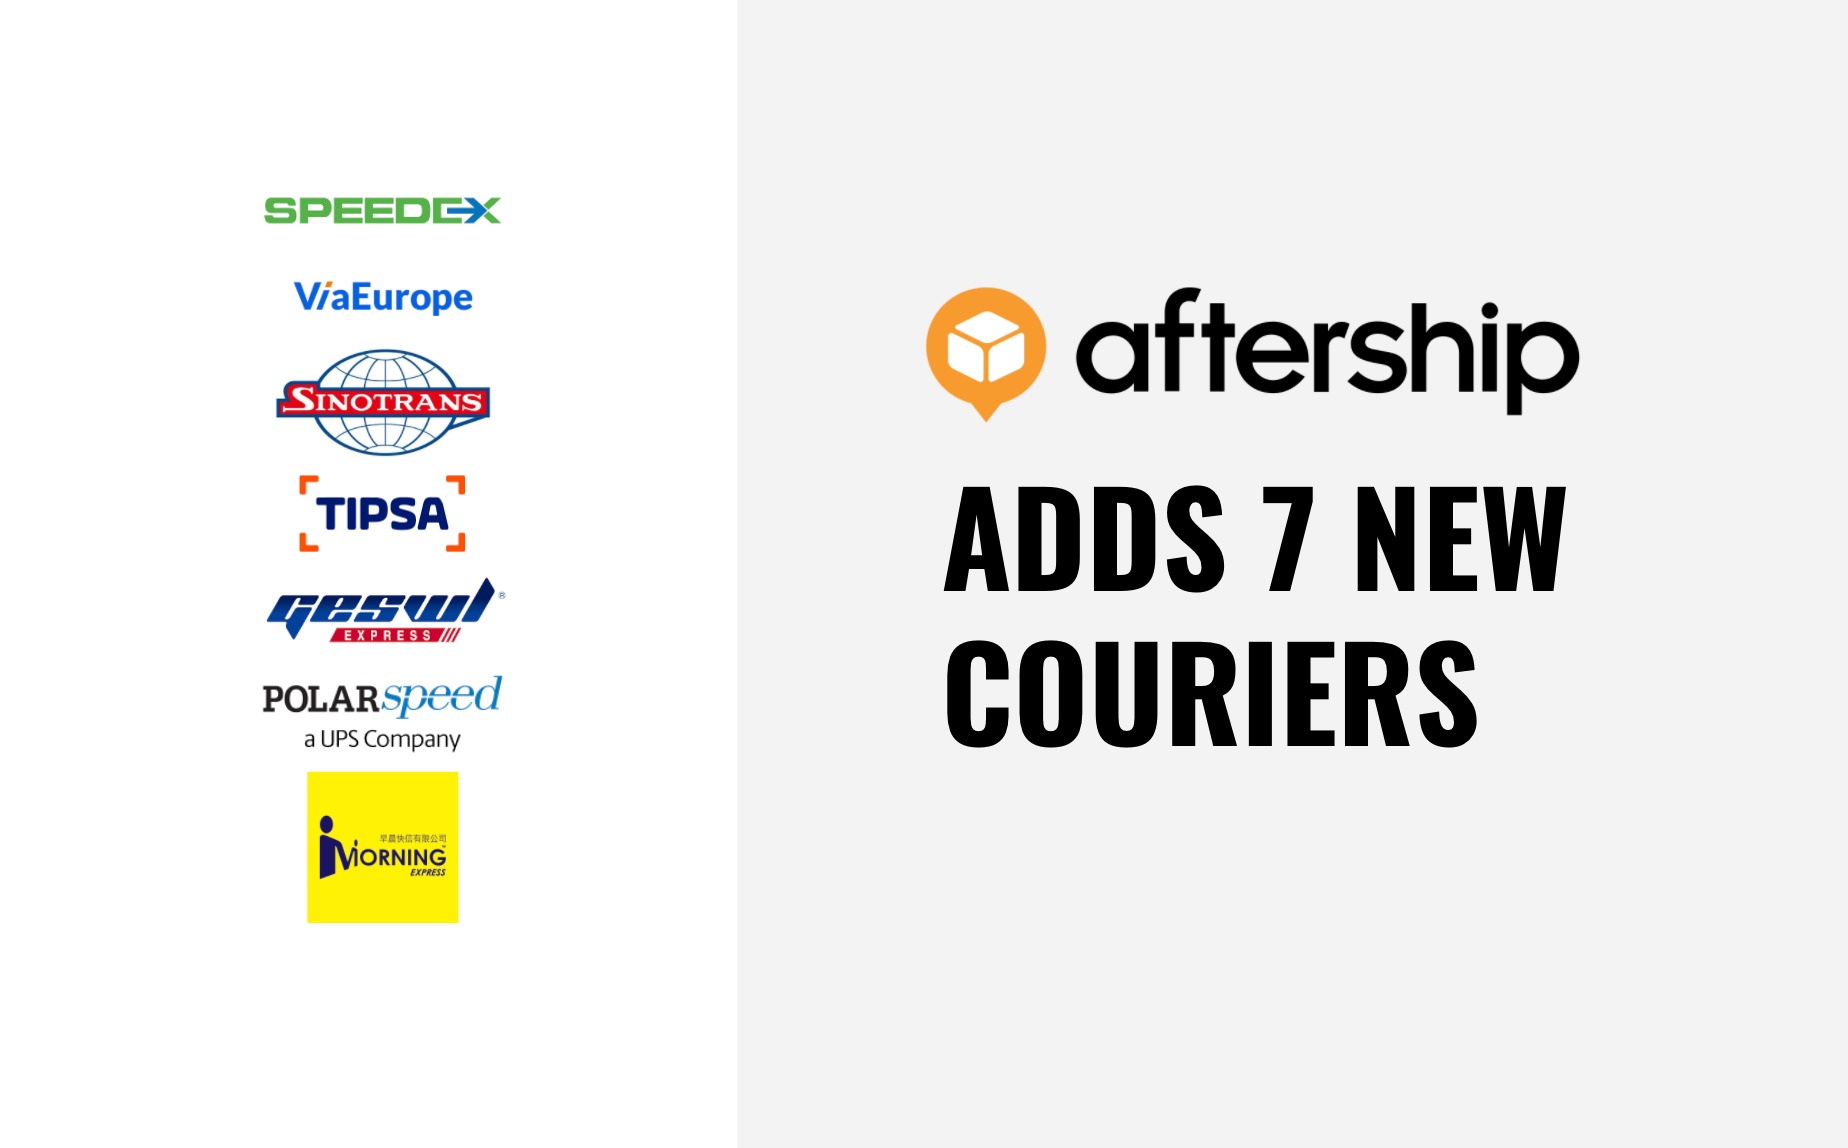 AfterShip adds 7 new couriers this week (9th Mar 2021 to 23rd Mar 2021)